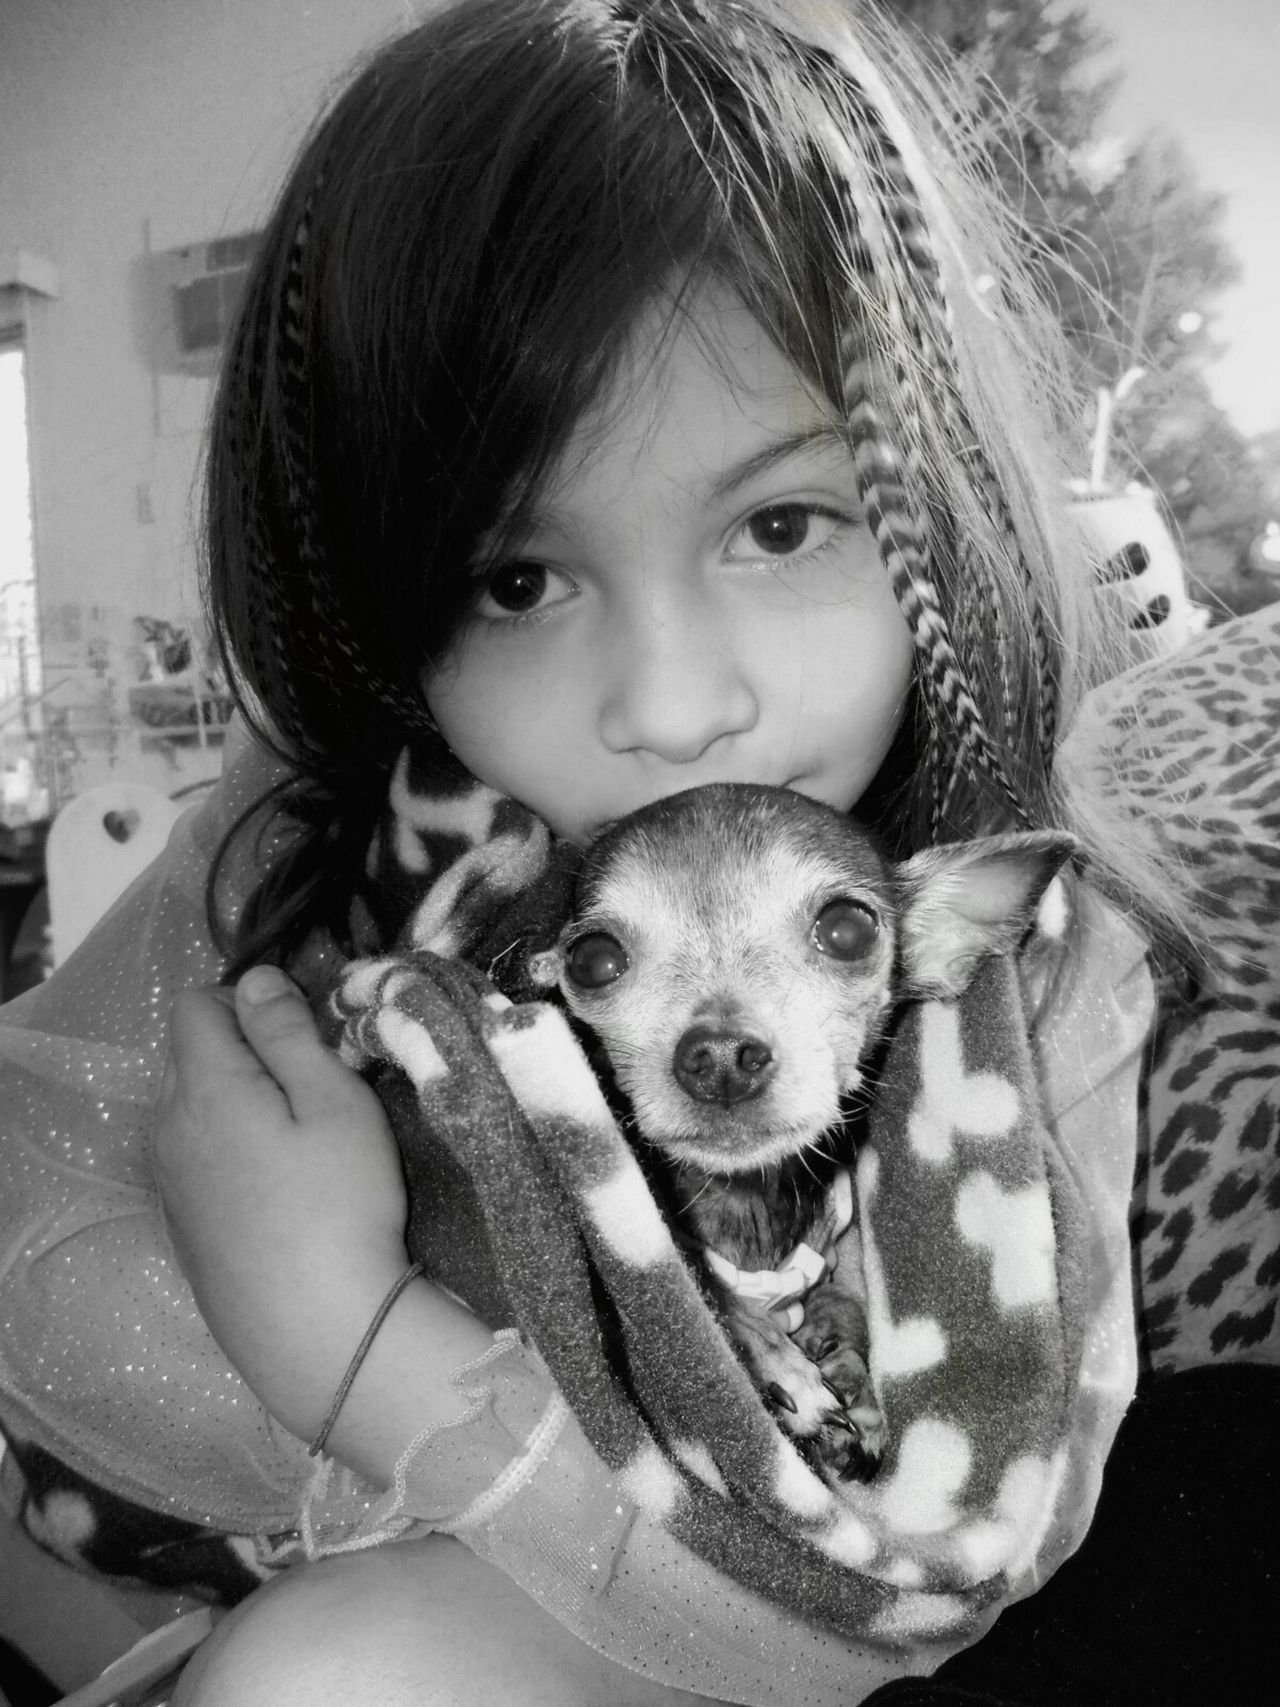 Portrait Children Playing Children Photography Animal Themes Looking At Camera Dog Pets Innocence Domestic Animals Friendship Close-up Girls One Animal Real People Cute Childhood Random Acts Of Photography Enjoying Life Tranquil Scene Indoors  In The Moments Live, Love, Laugh Fun Day